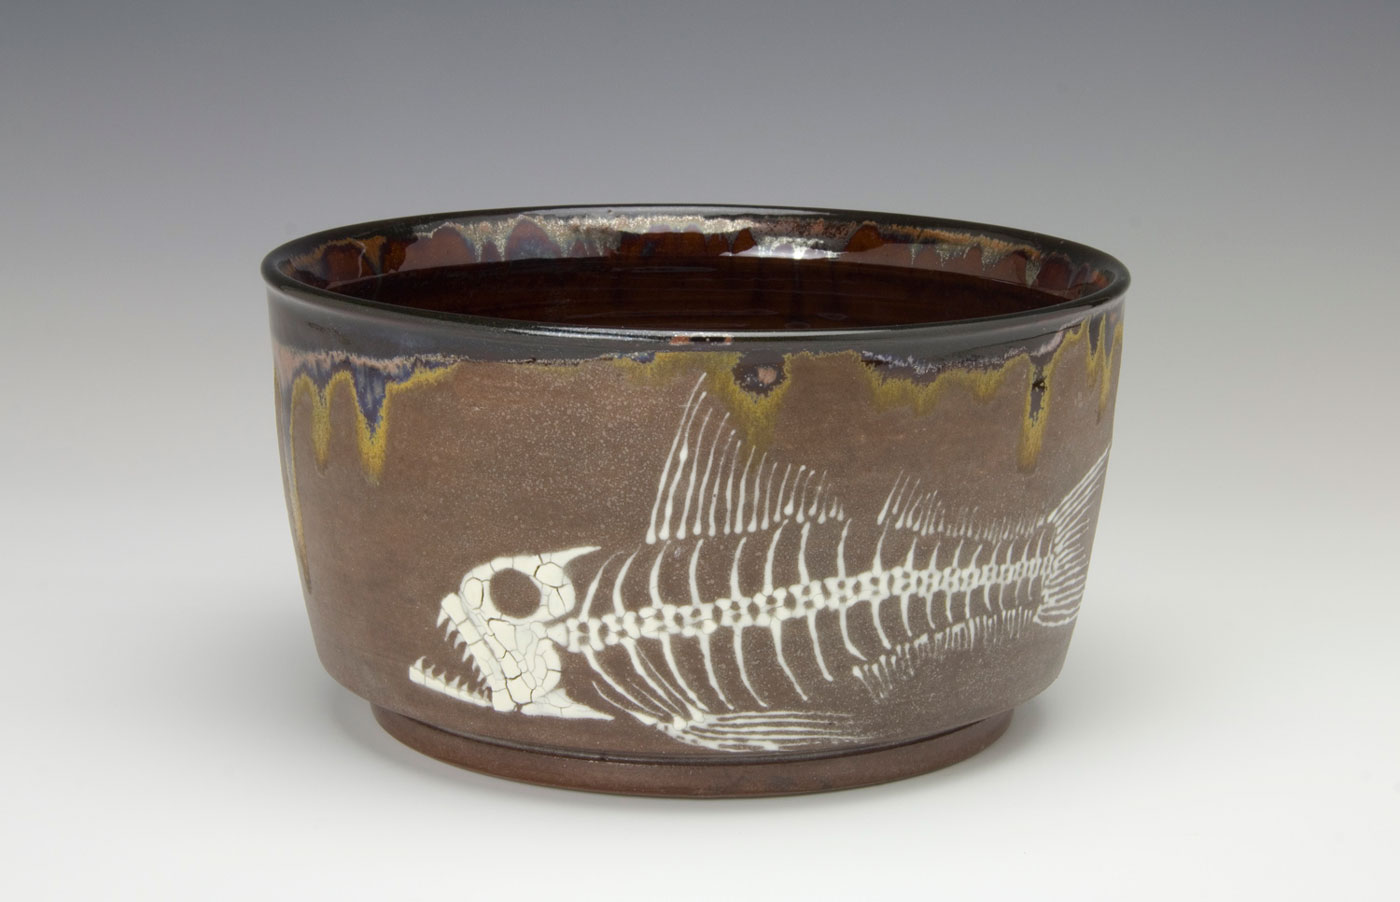 Fossil-Fish-Bowl-Bruce-Gholson-Seagrove-Pottery.jpg